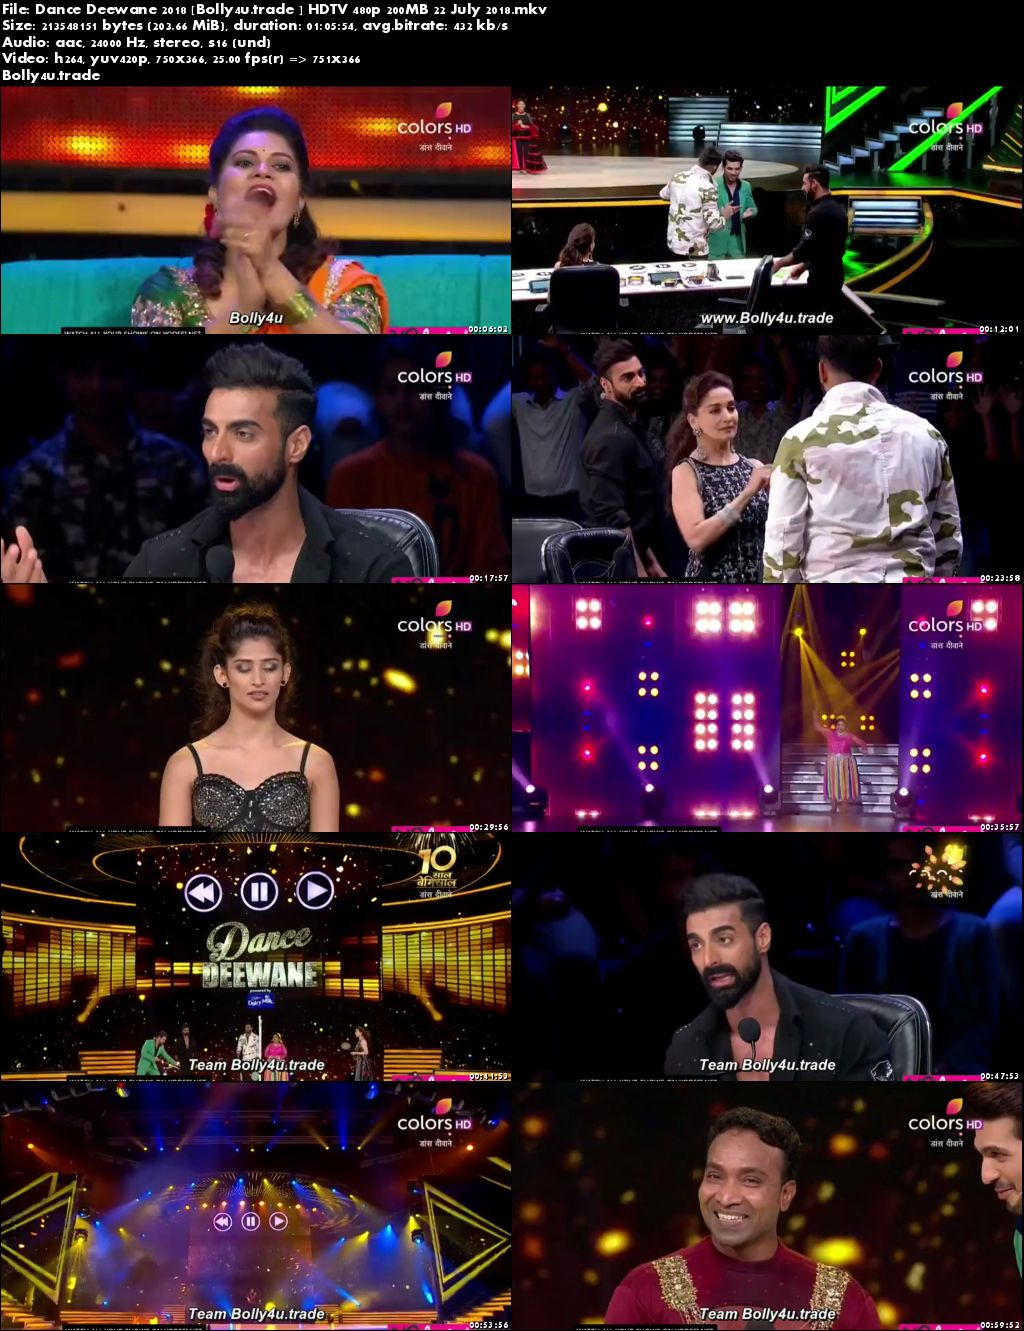 Dance Deewane 2018 HDTV 480p 200MB 22 July 2018 Download